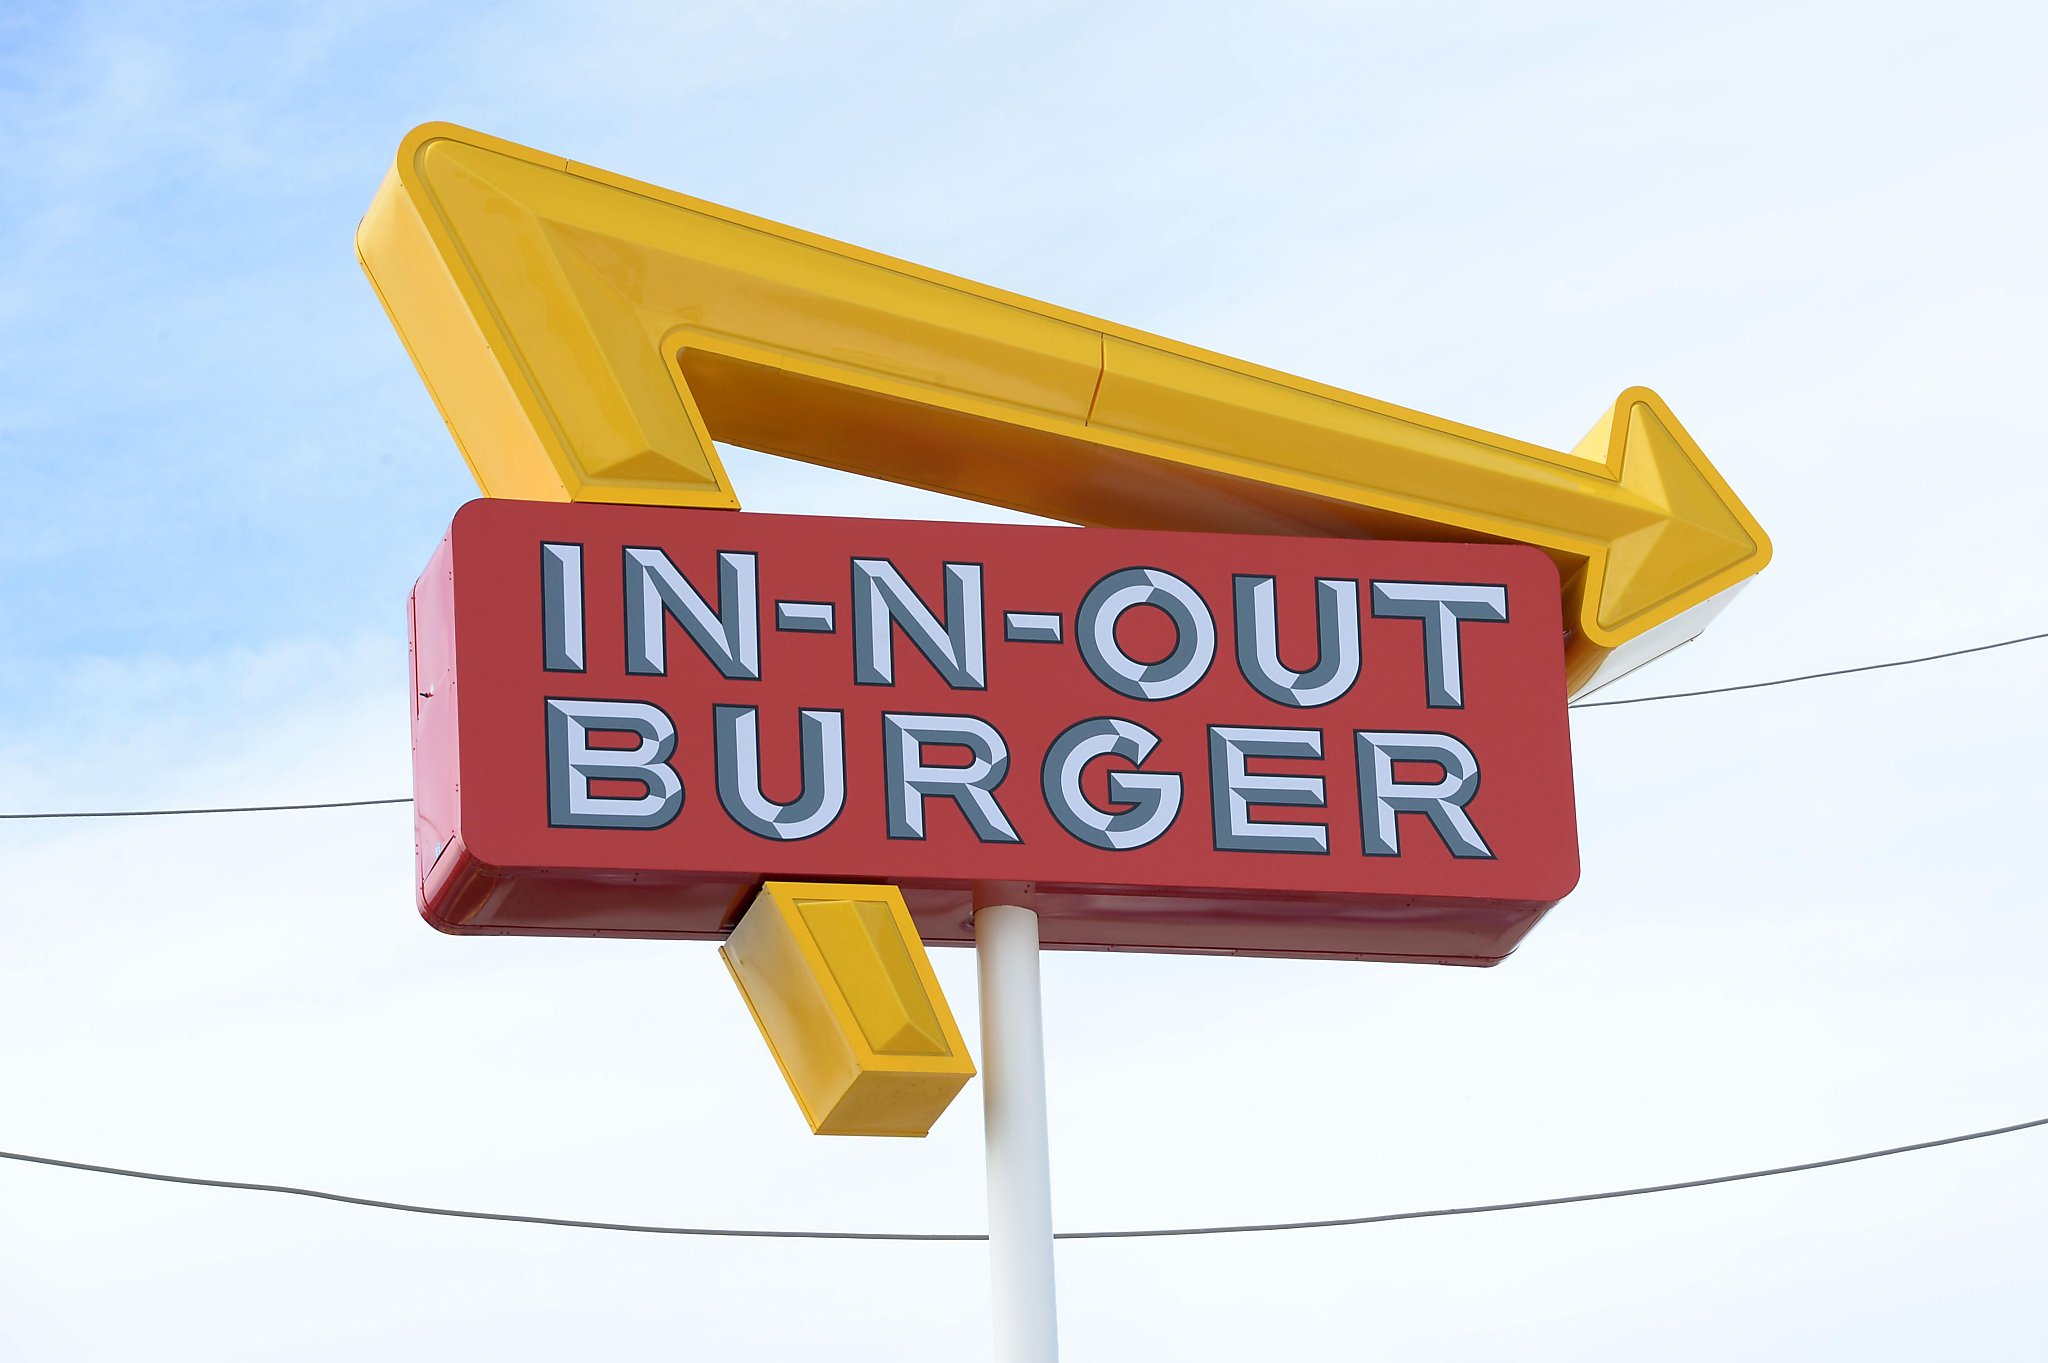 145 Colorado In-n-out Employees Have Tested Positive For Covid-19 photo